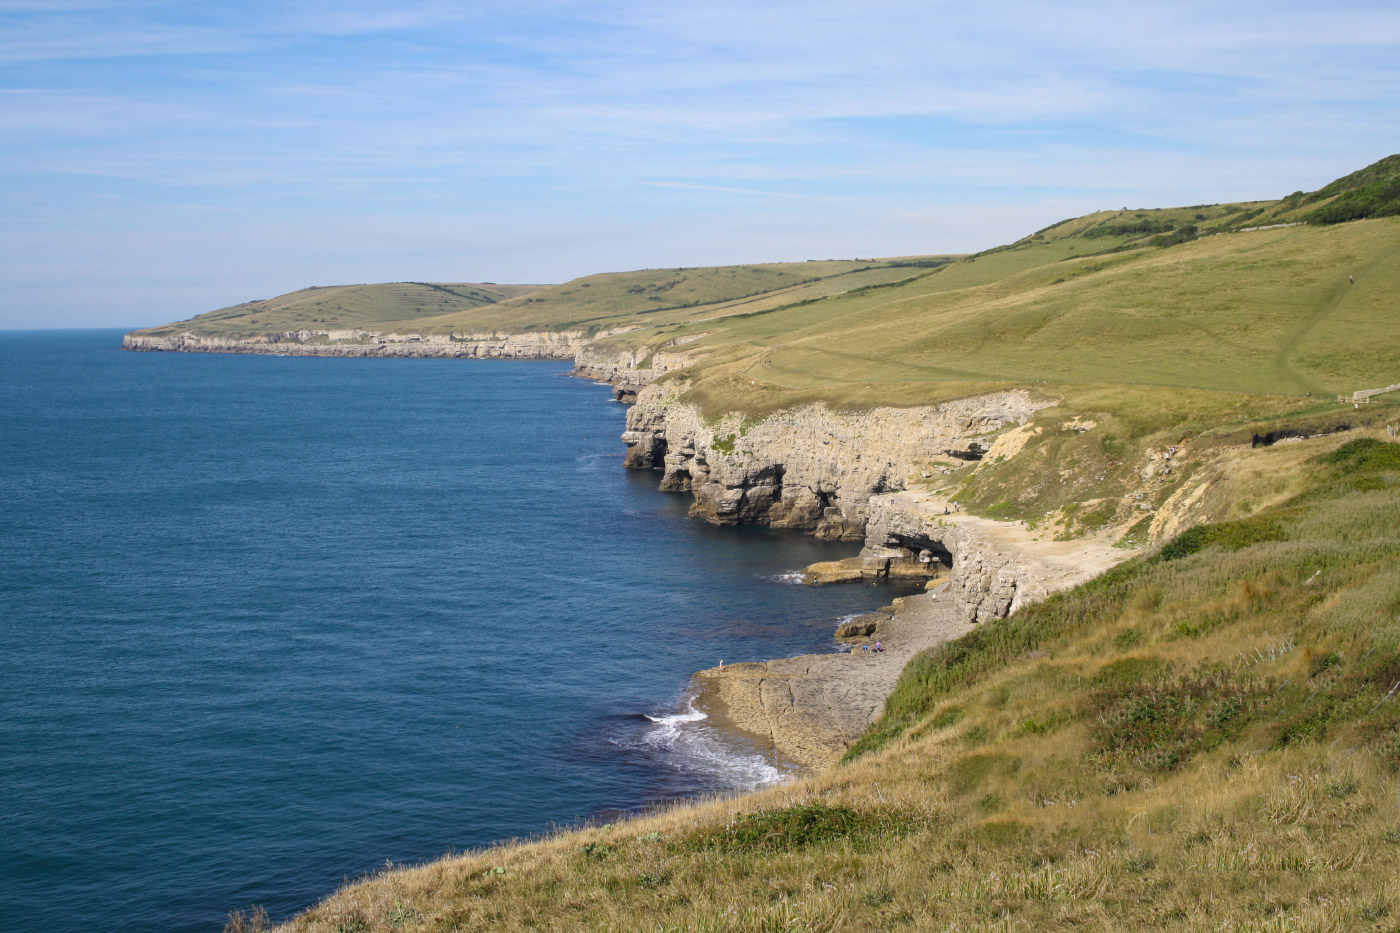 Looking across Dancing Ledge